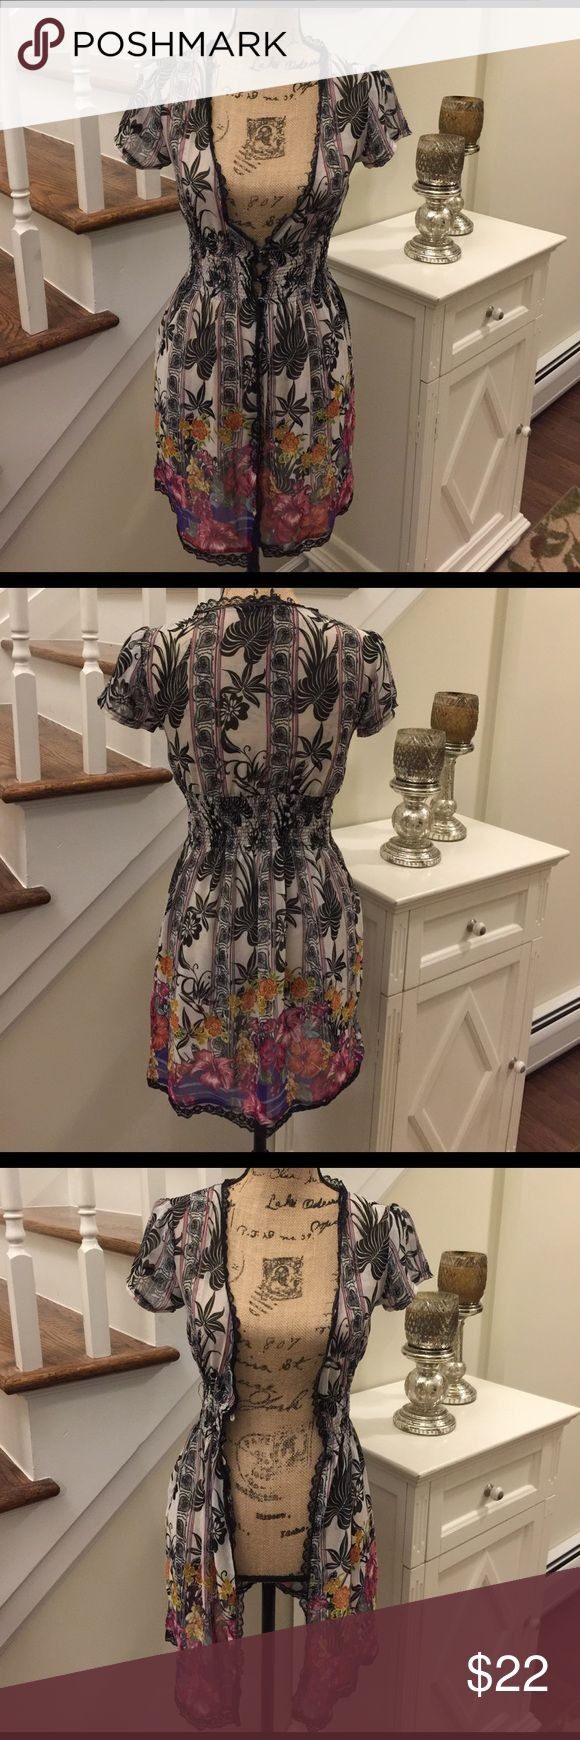 🌻🍄 AMERICAN RAG 🍄🌻 Gorgeous Cover Up 🌻🍄 AMERICAN RAG 🍄🌻 Gorgeous Cover Up this great over a bikini or with a tank top, jeans or capris.  The Flowers on the bottom just dress up anything yours wearing.  Preloved in great condition. American Rag Tops